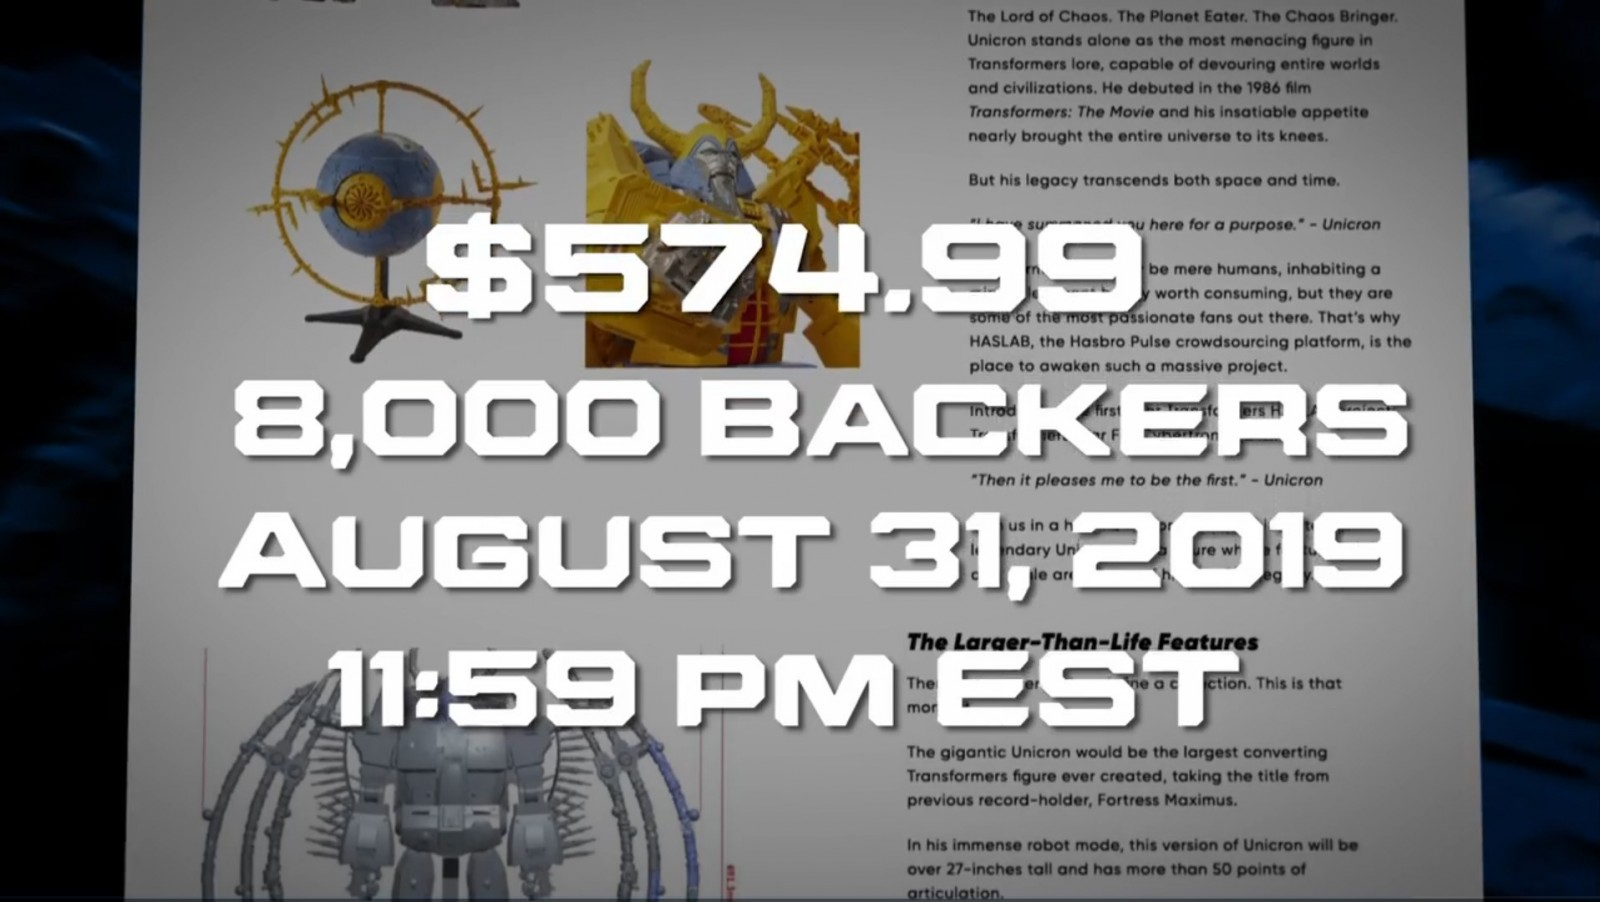 Transformers News: New Unicron Toy Revealed and will only Happen if 8000 Fans Preorder for $575 before August 31